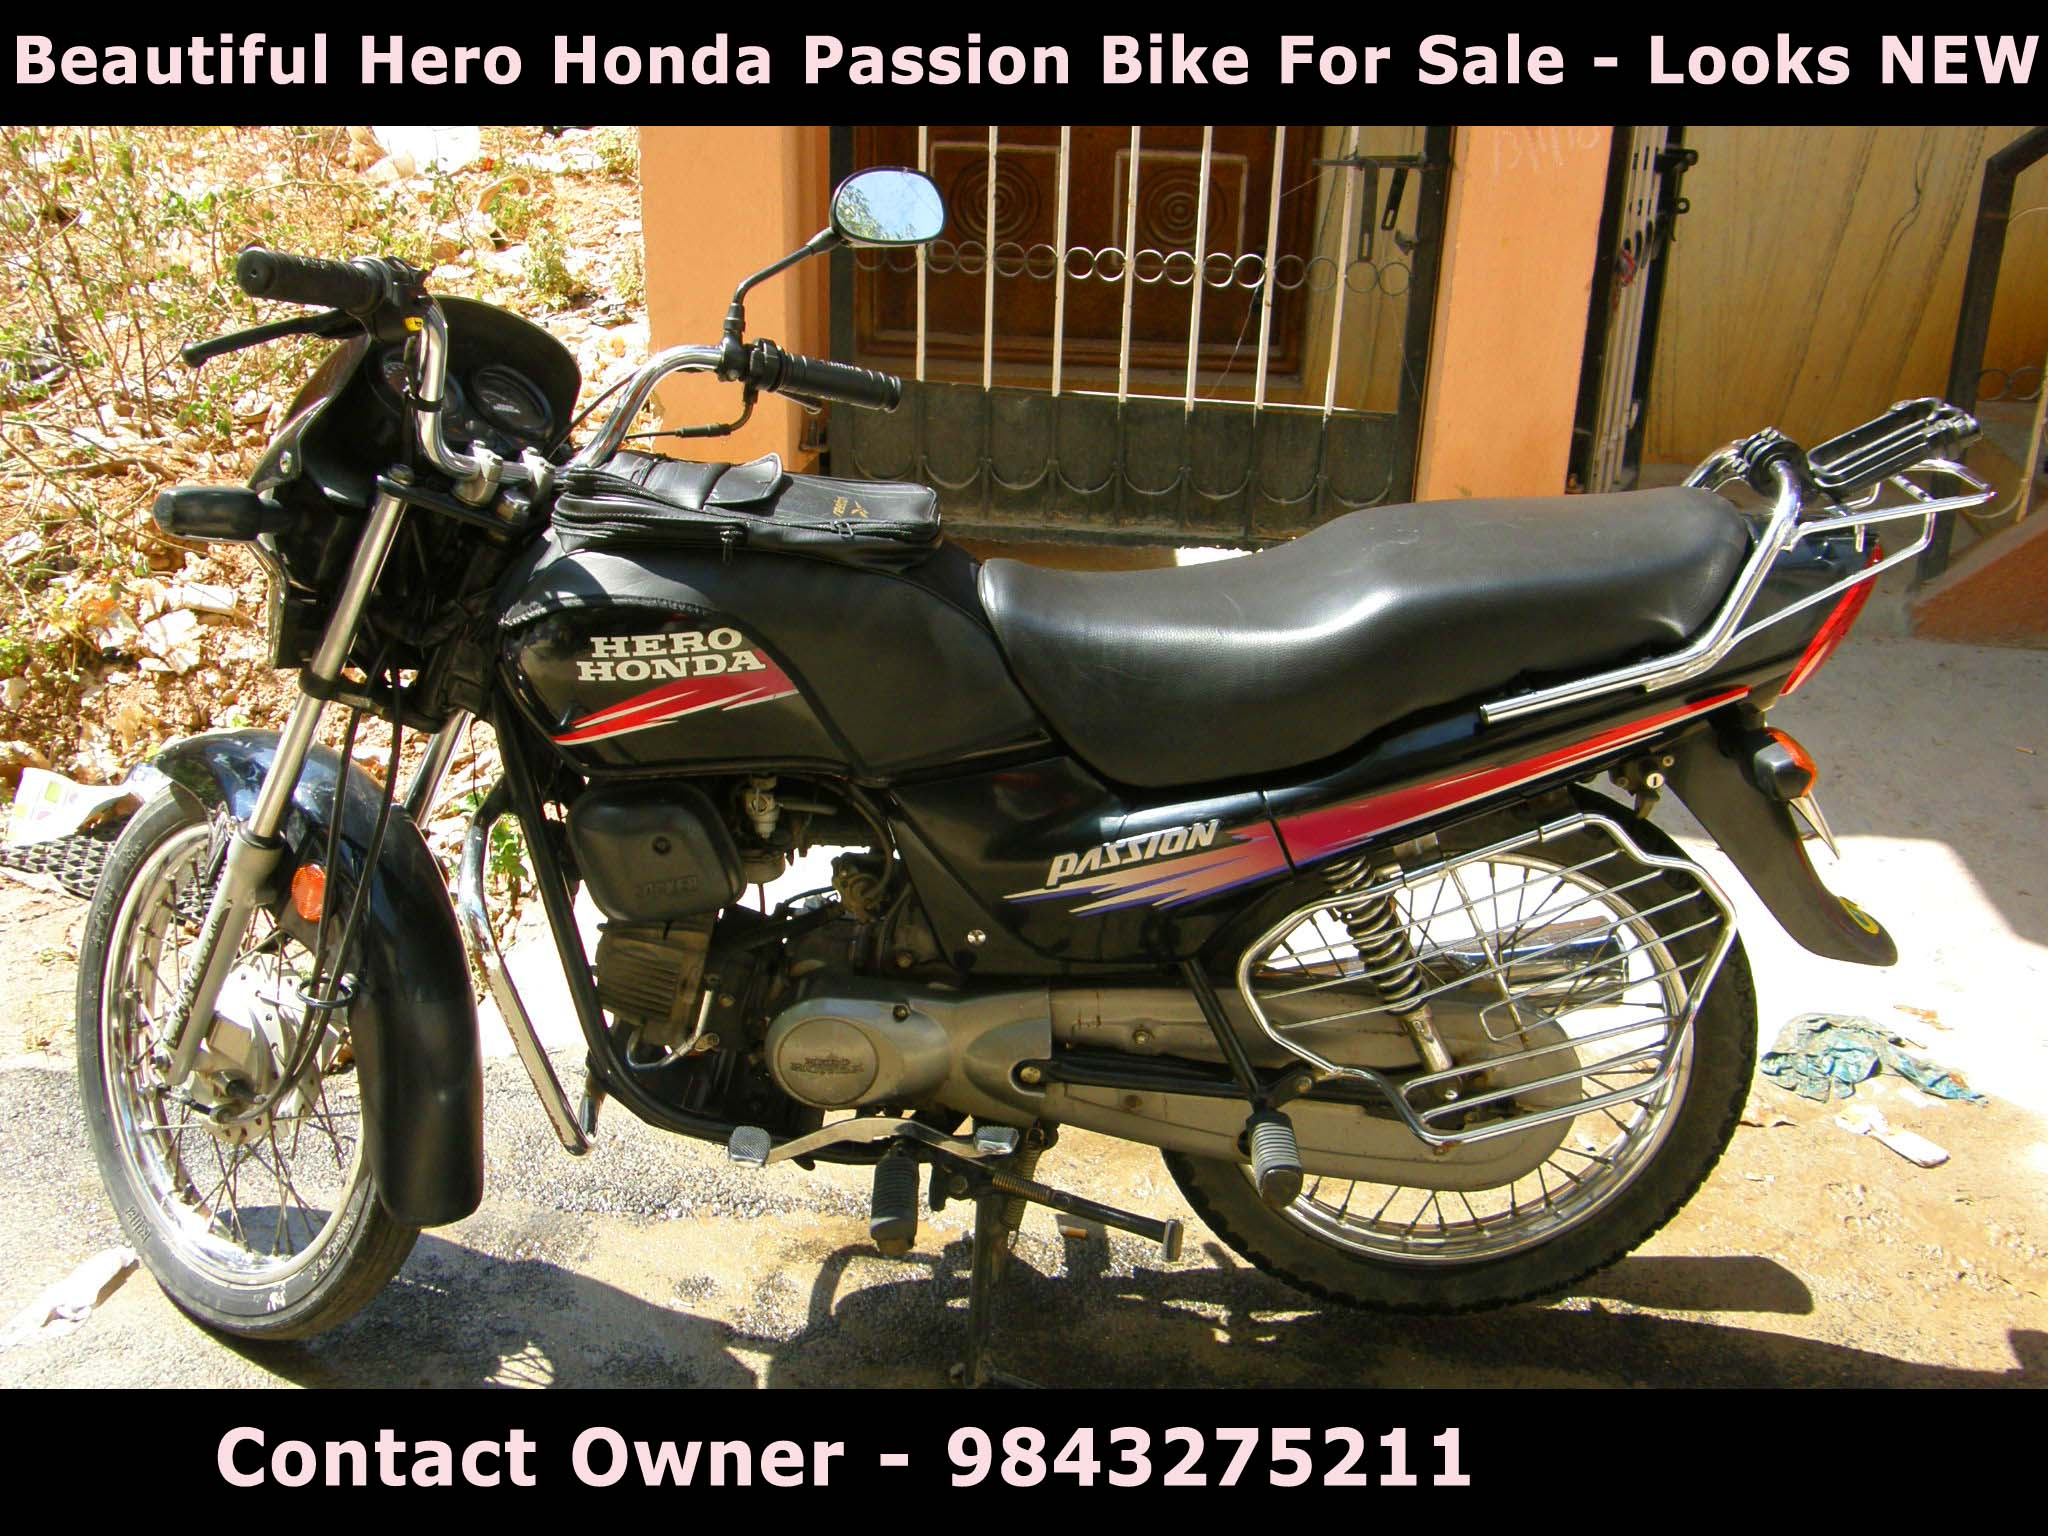 Hero Honda Passion Bike For Sale - Looks New